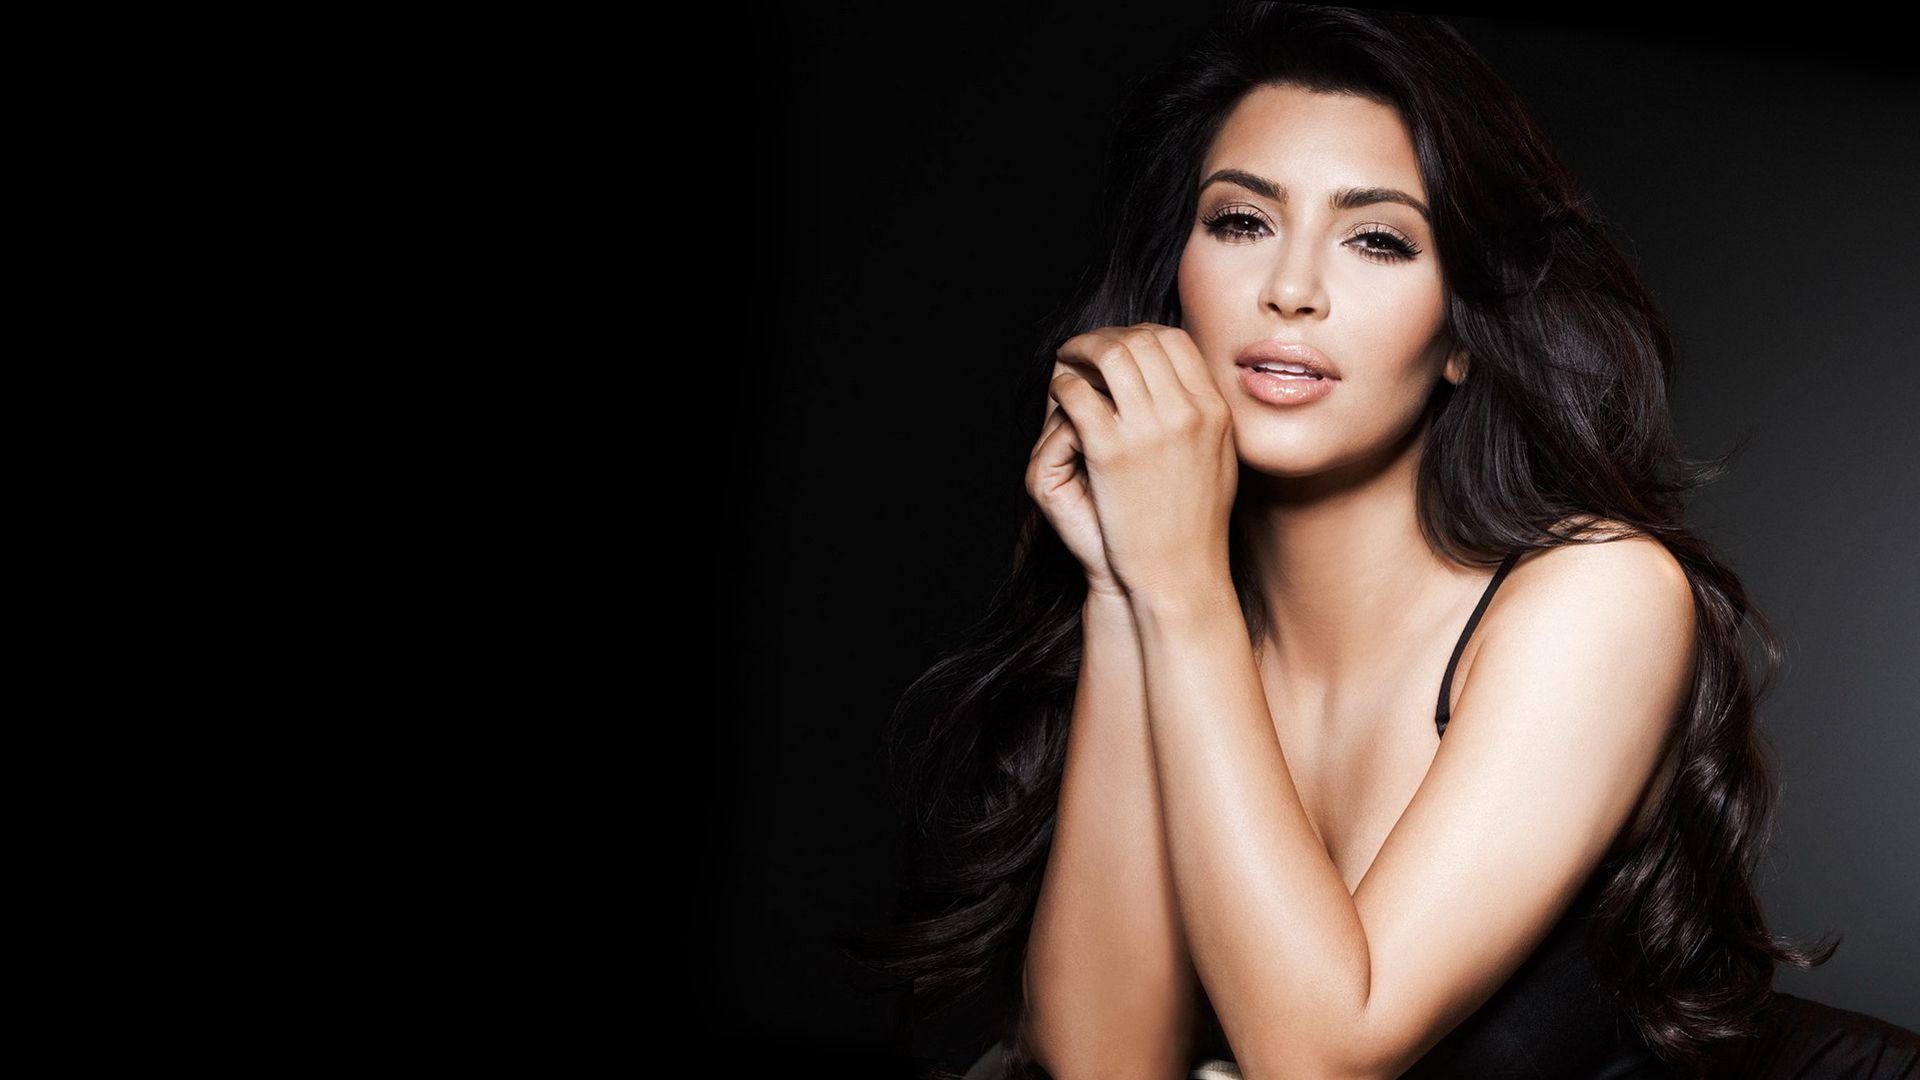 Kim Kardashian Wallpapers High Quality Download Free 1920×1080 Kim